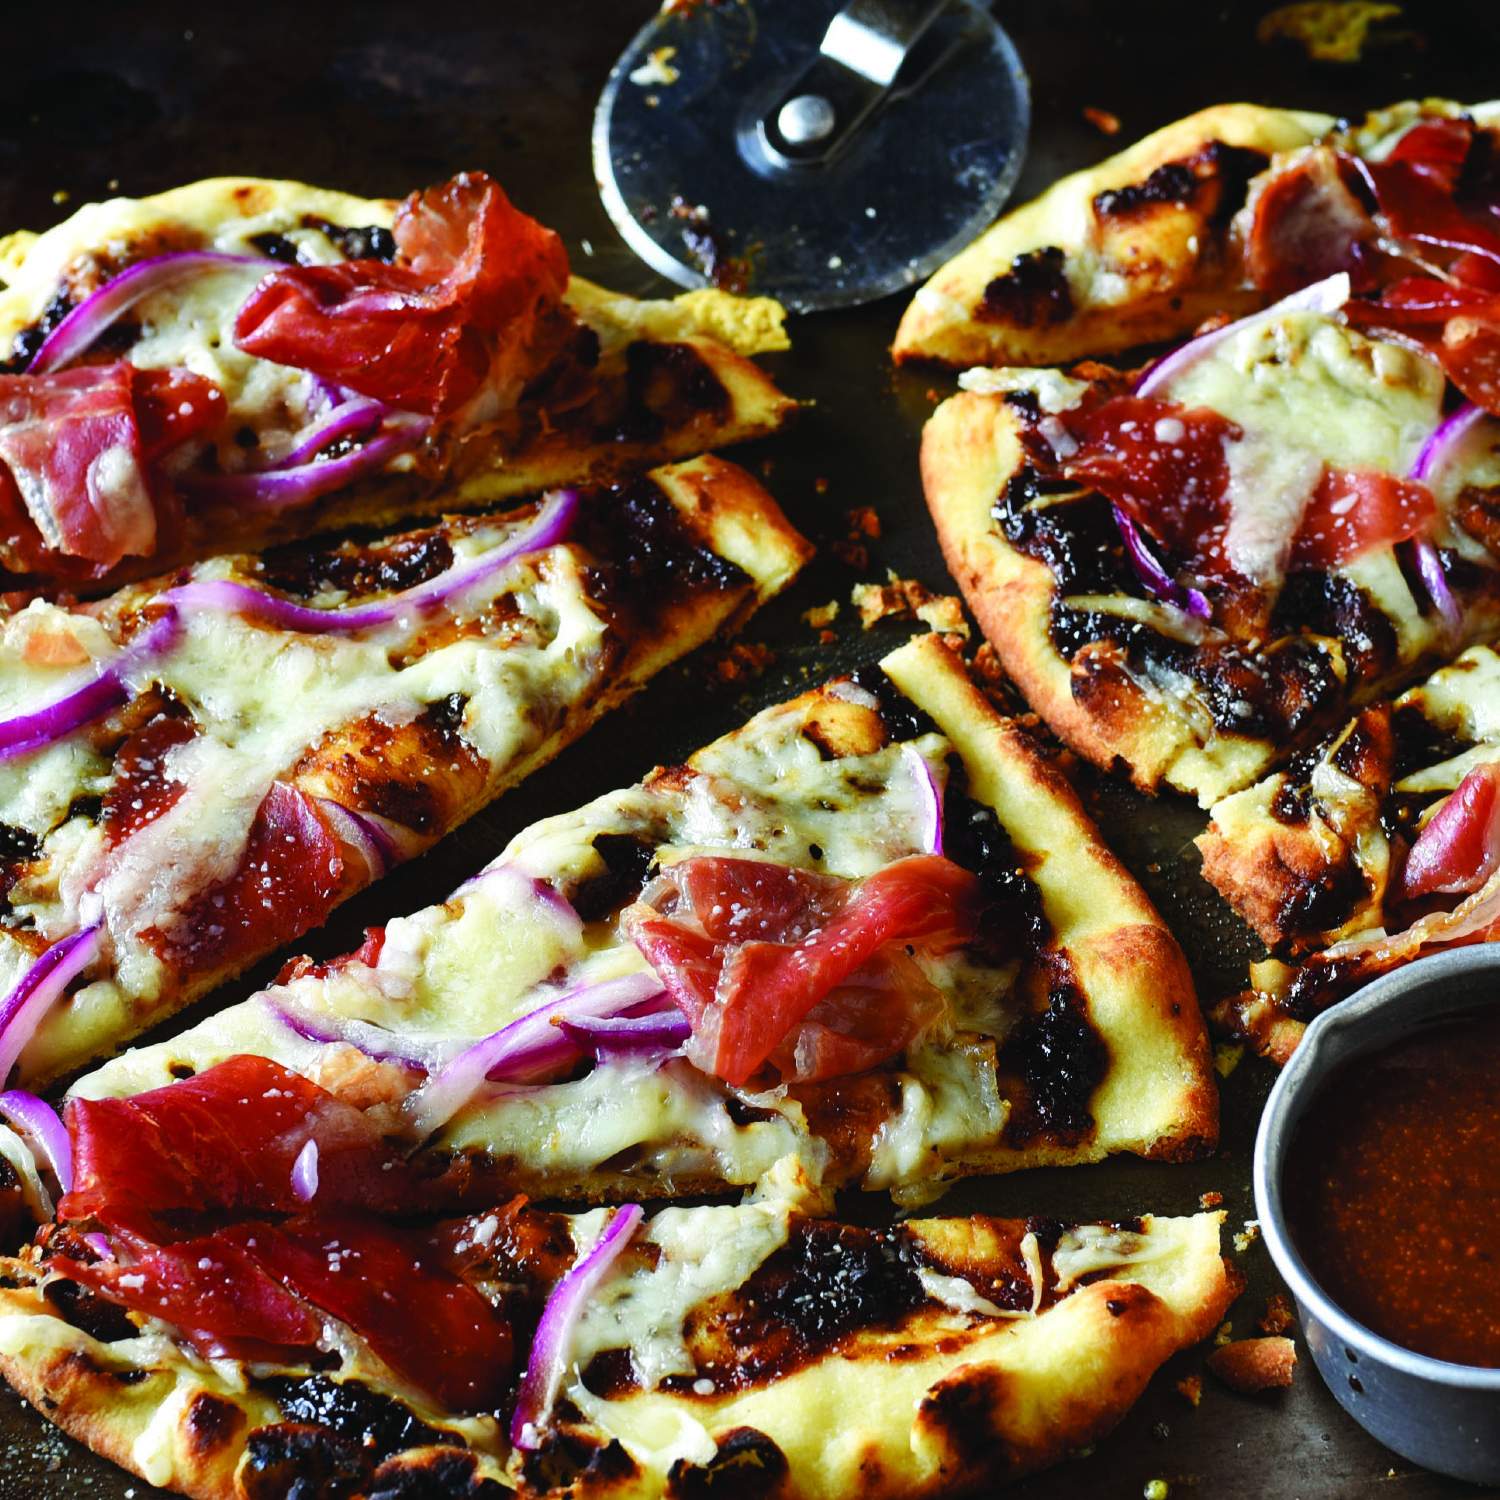 fig mustard prosciutto flatbread pizza